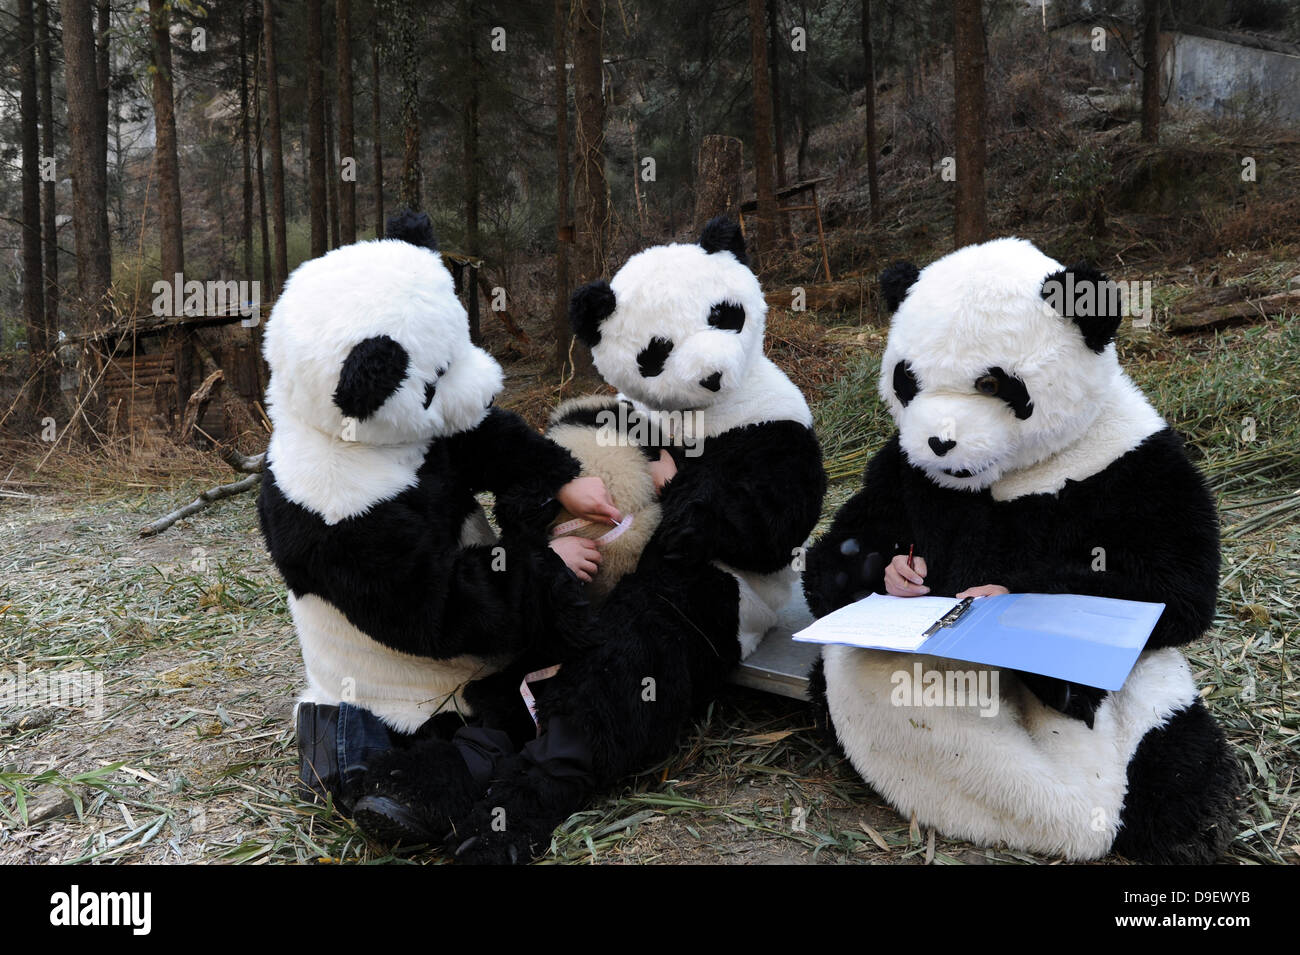 Captive Panda Research Researchers Dressed As Pandas Look After A Stock Photo Alamy